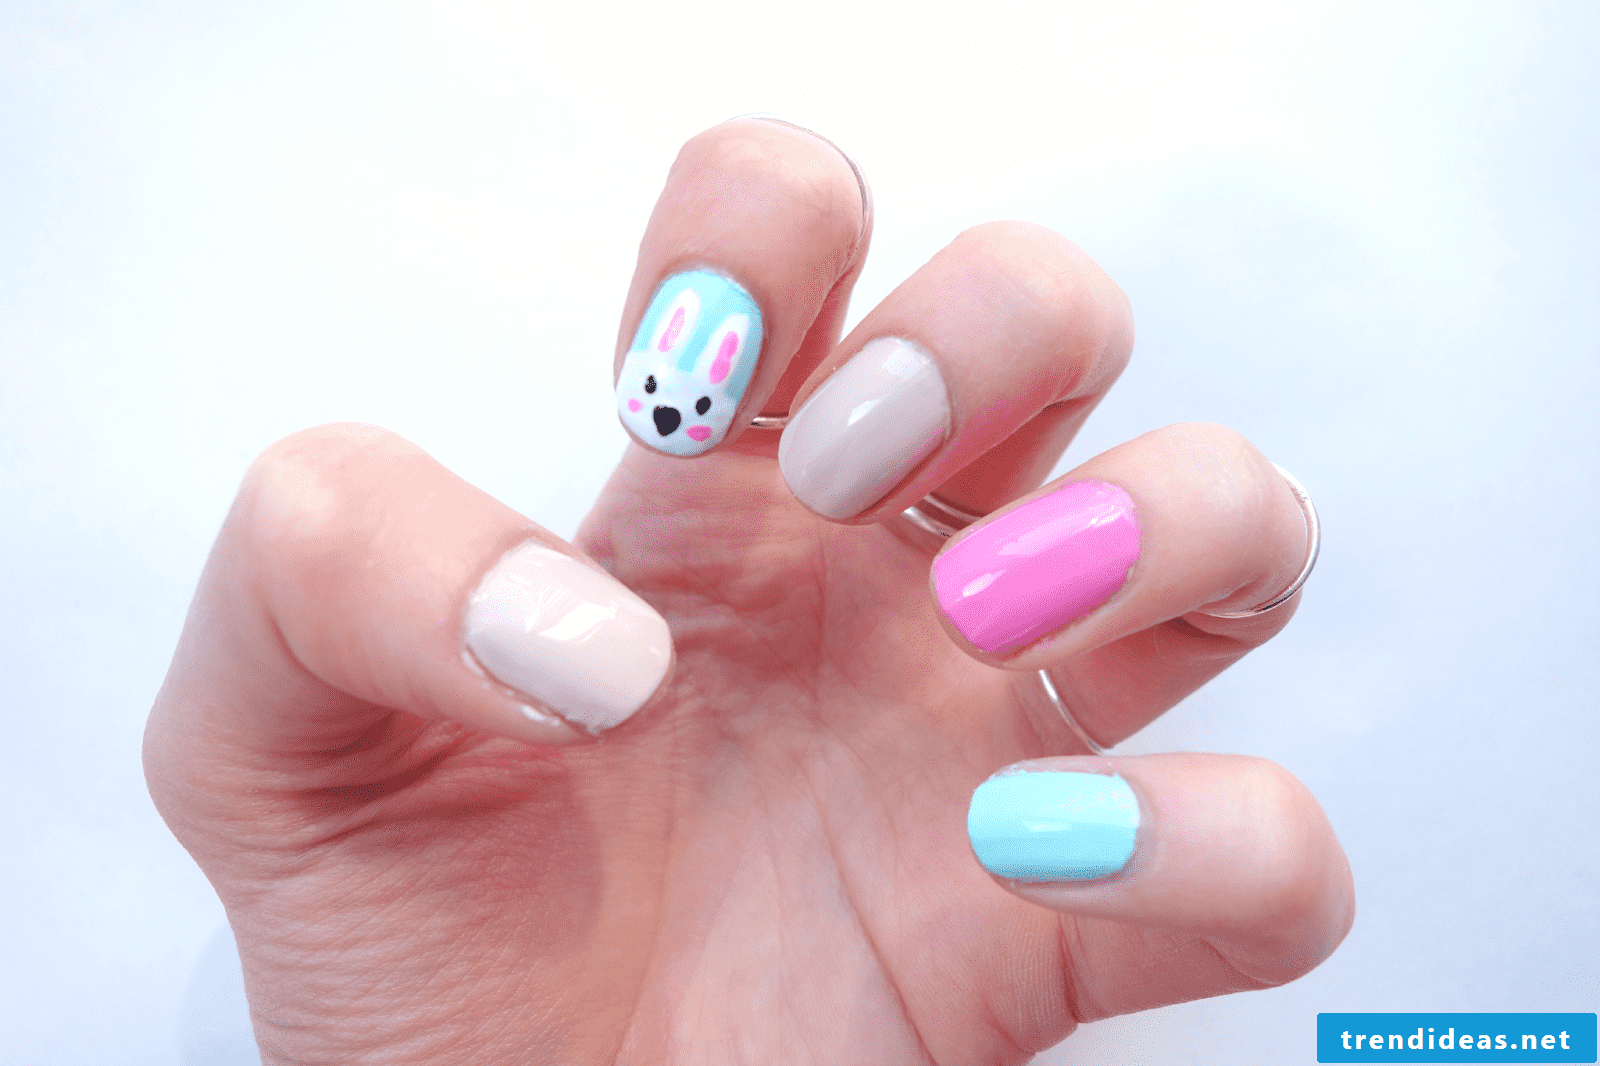 Easter 2018 on the hands - bunny nails design